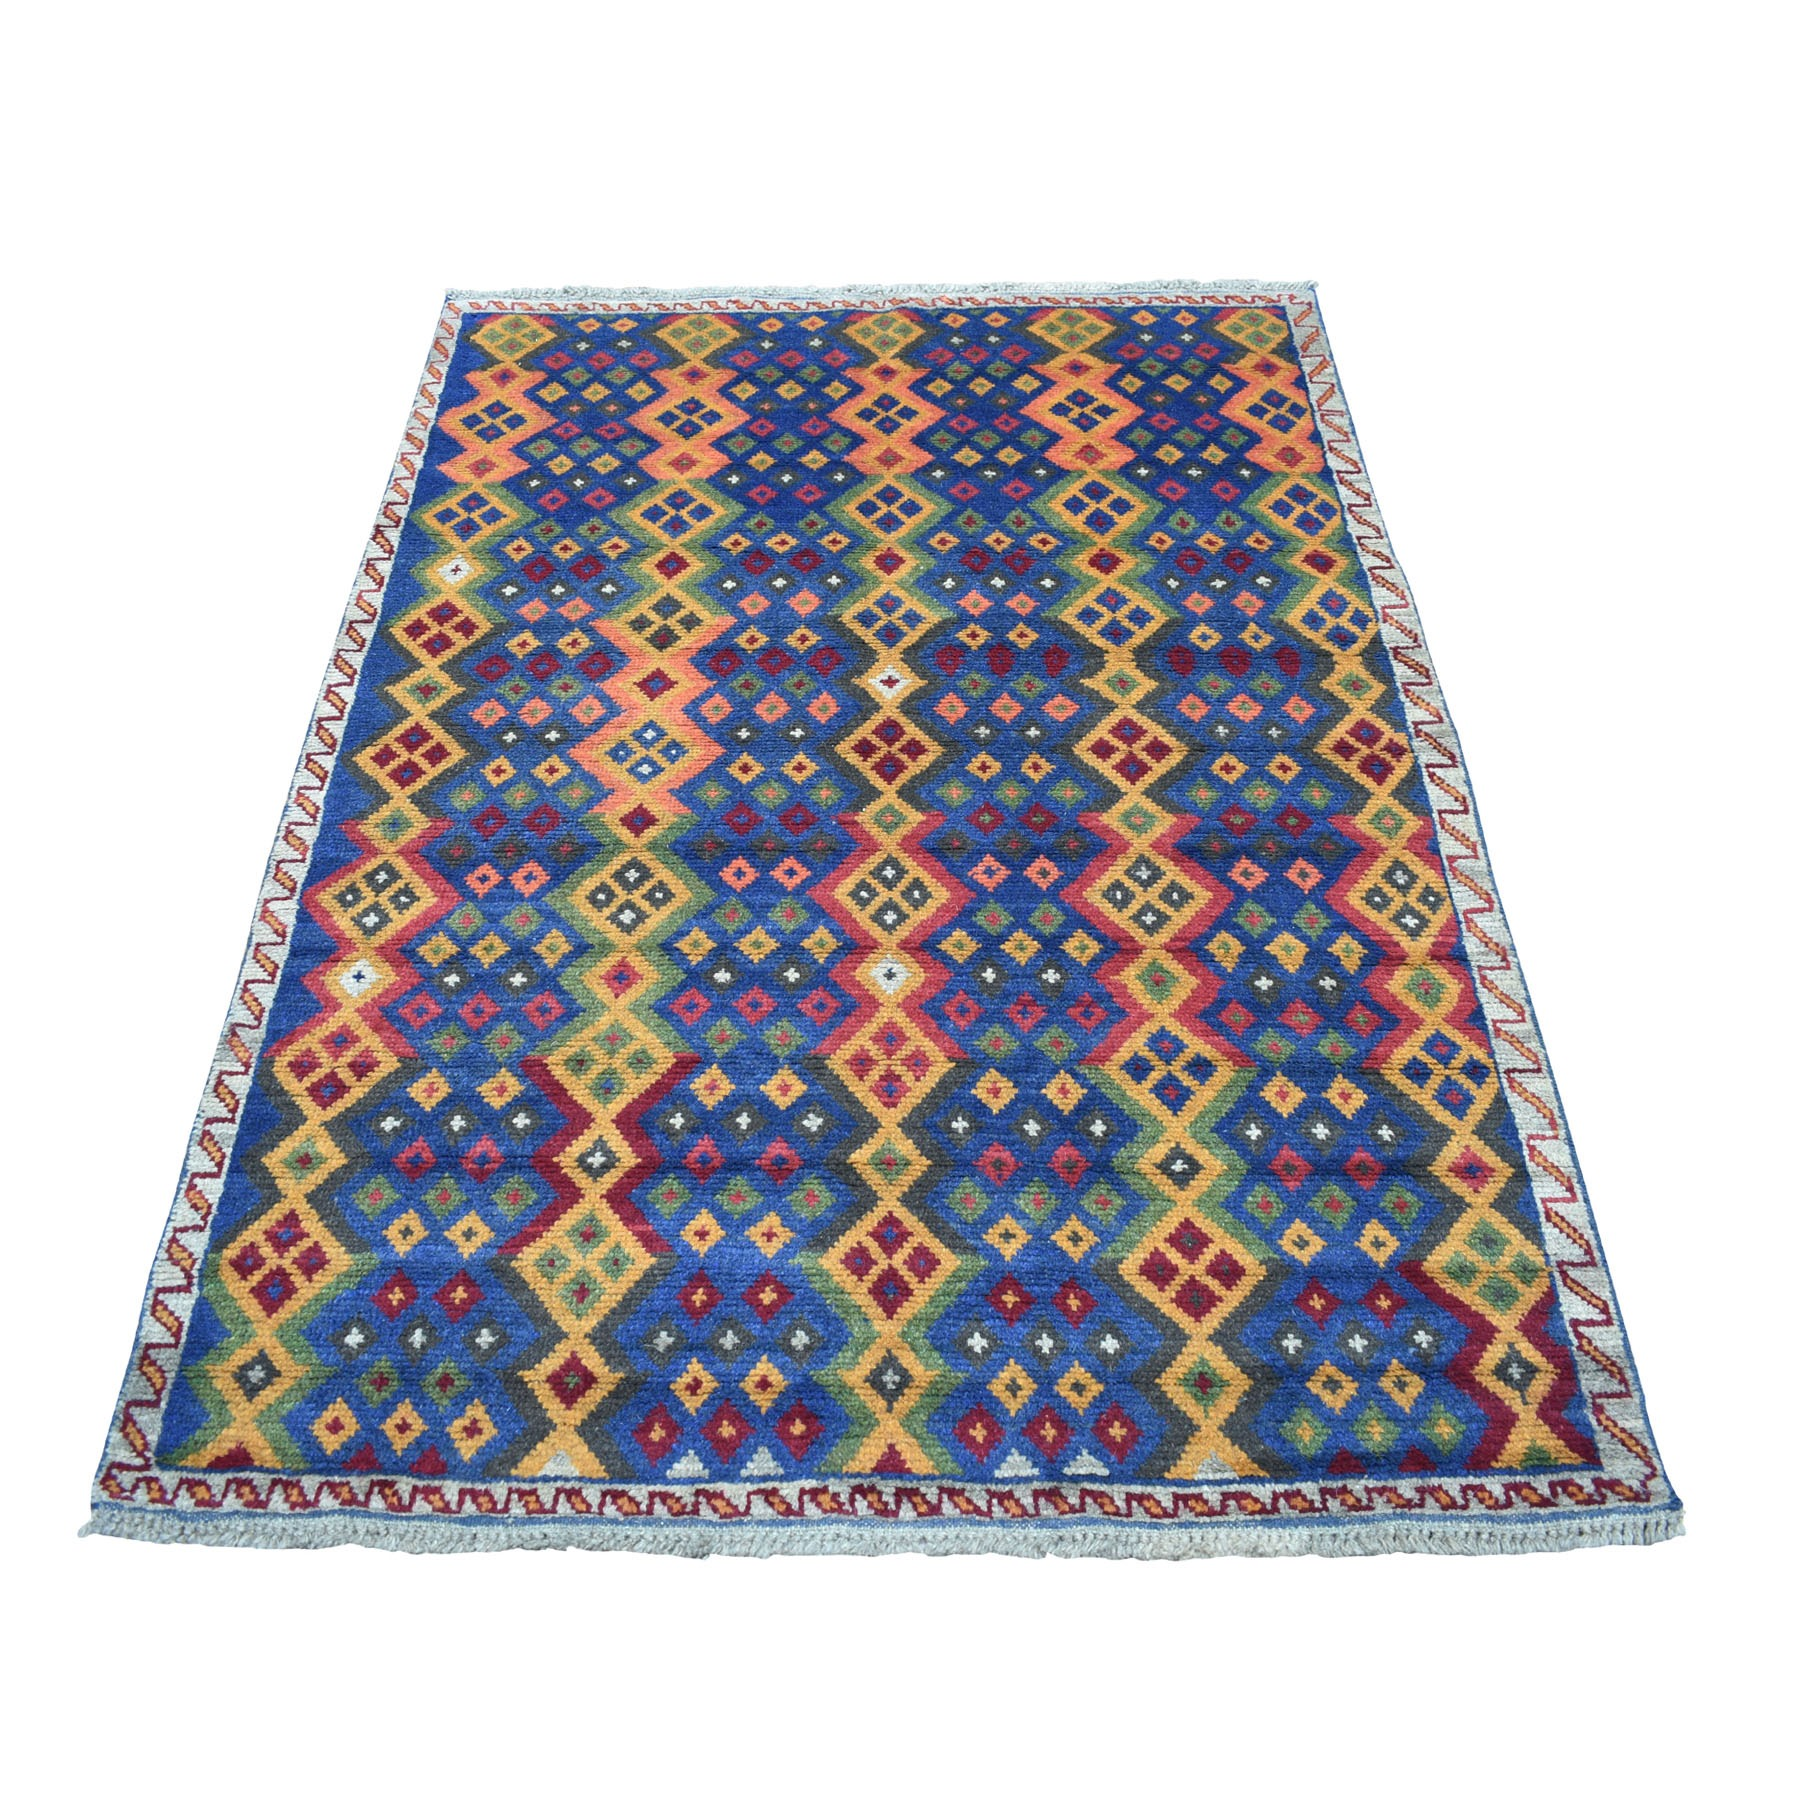 "4'1""x5'8"" Blue Colorful Afghan Baluch Geometric Design Hand Woven Pure Wool Oriental Rug"